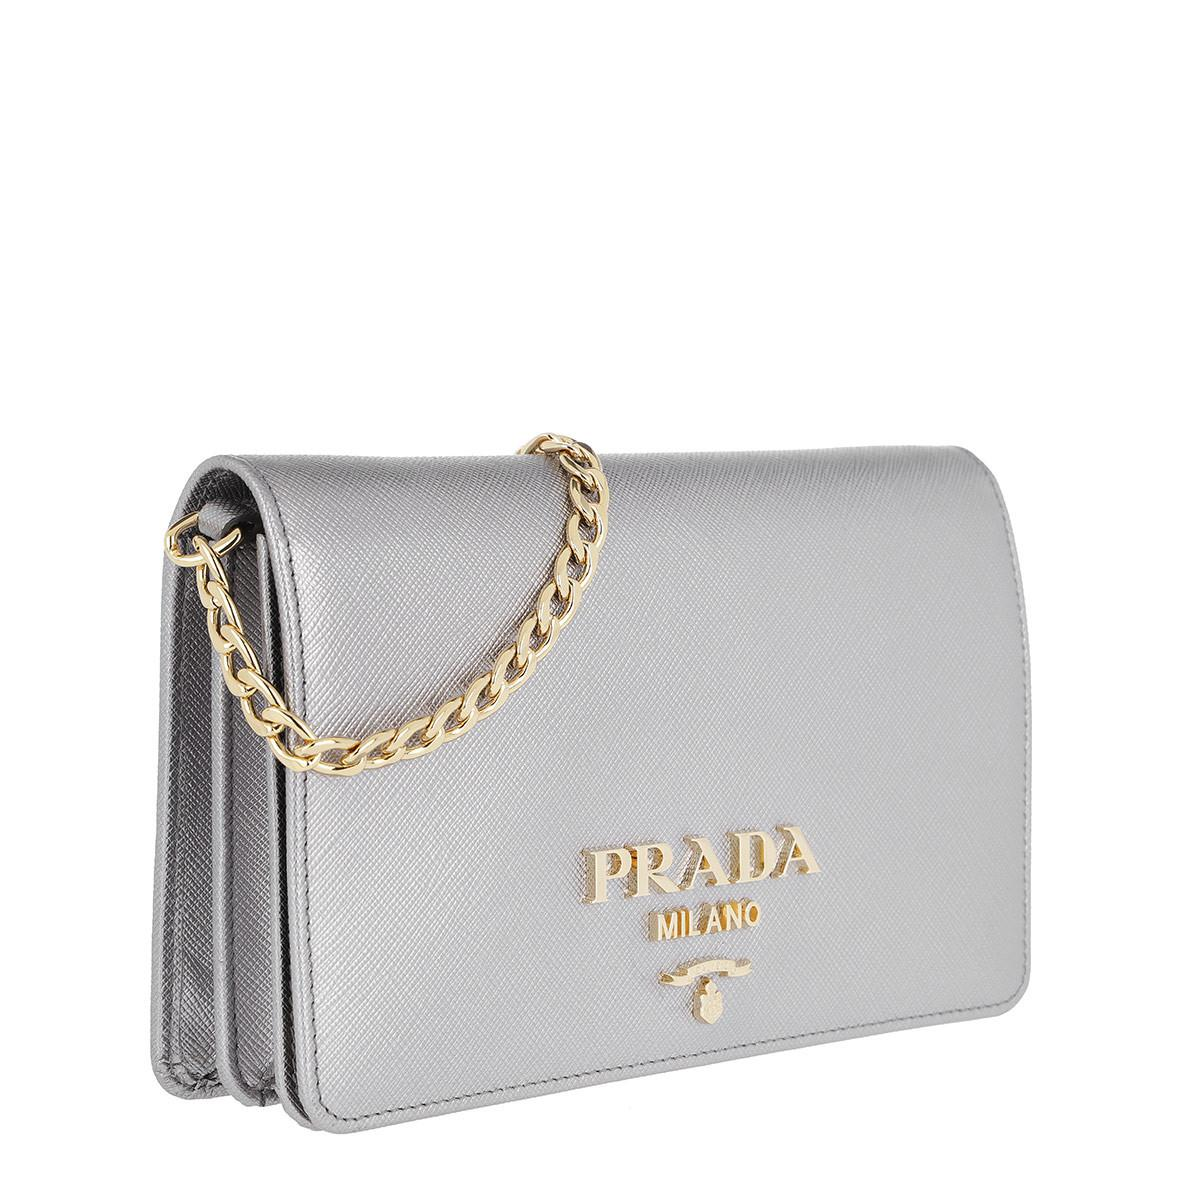 Discount Best Place Pay With Paypal Cross Body Bags - Portafoglio Con Catena F0XD9 - black - Cross Body Bags for ladies Prada Discount Authentic Hard Wearing USlOEsicXb